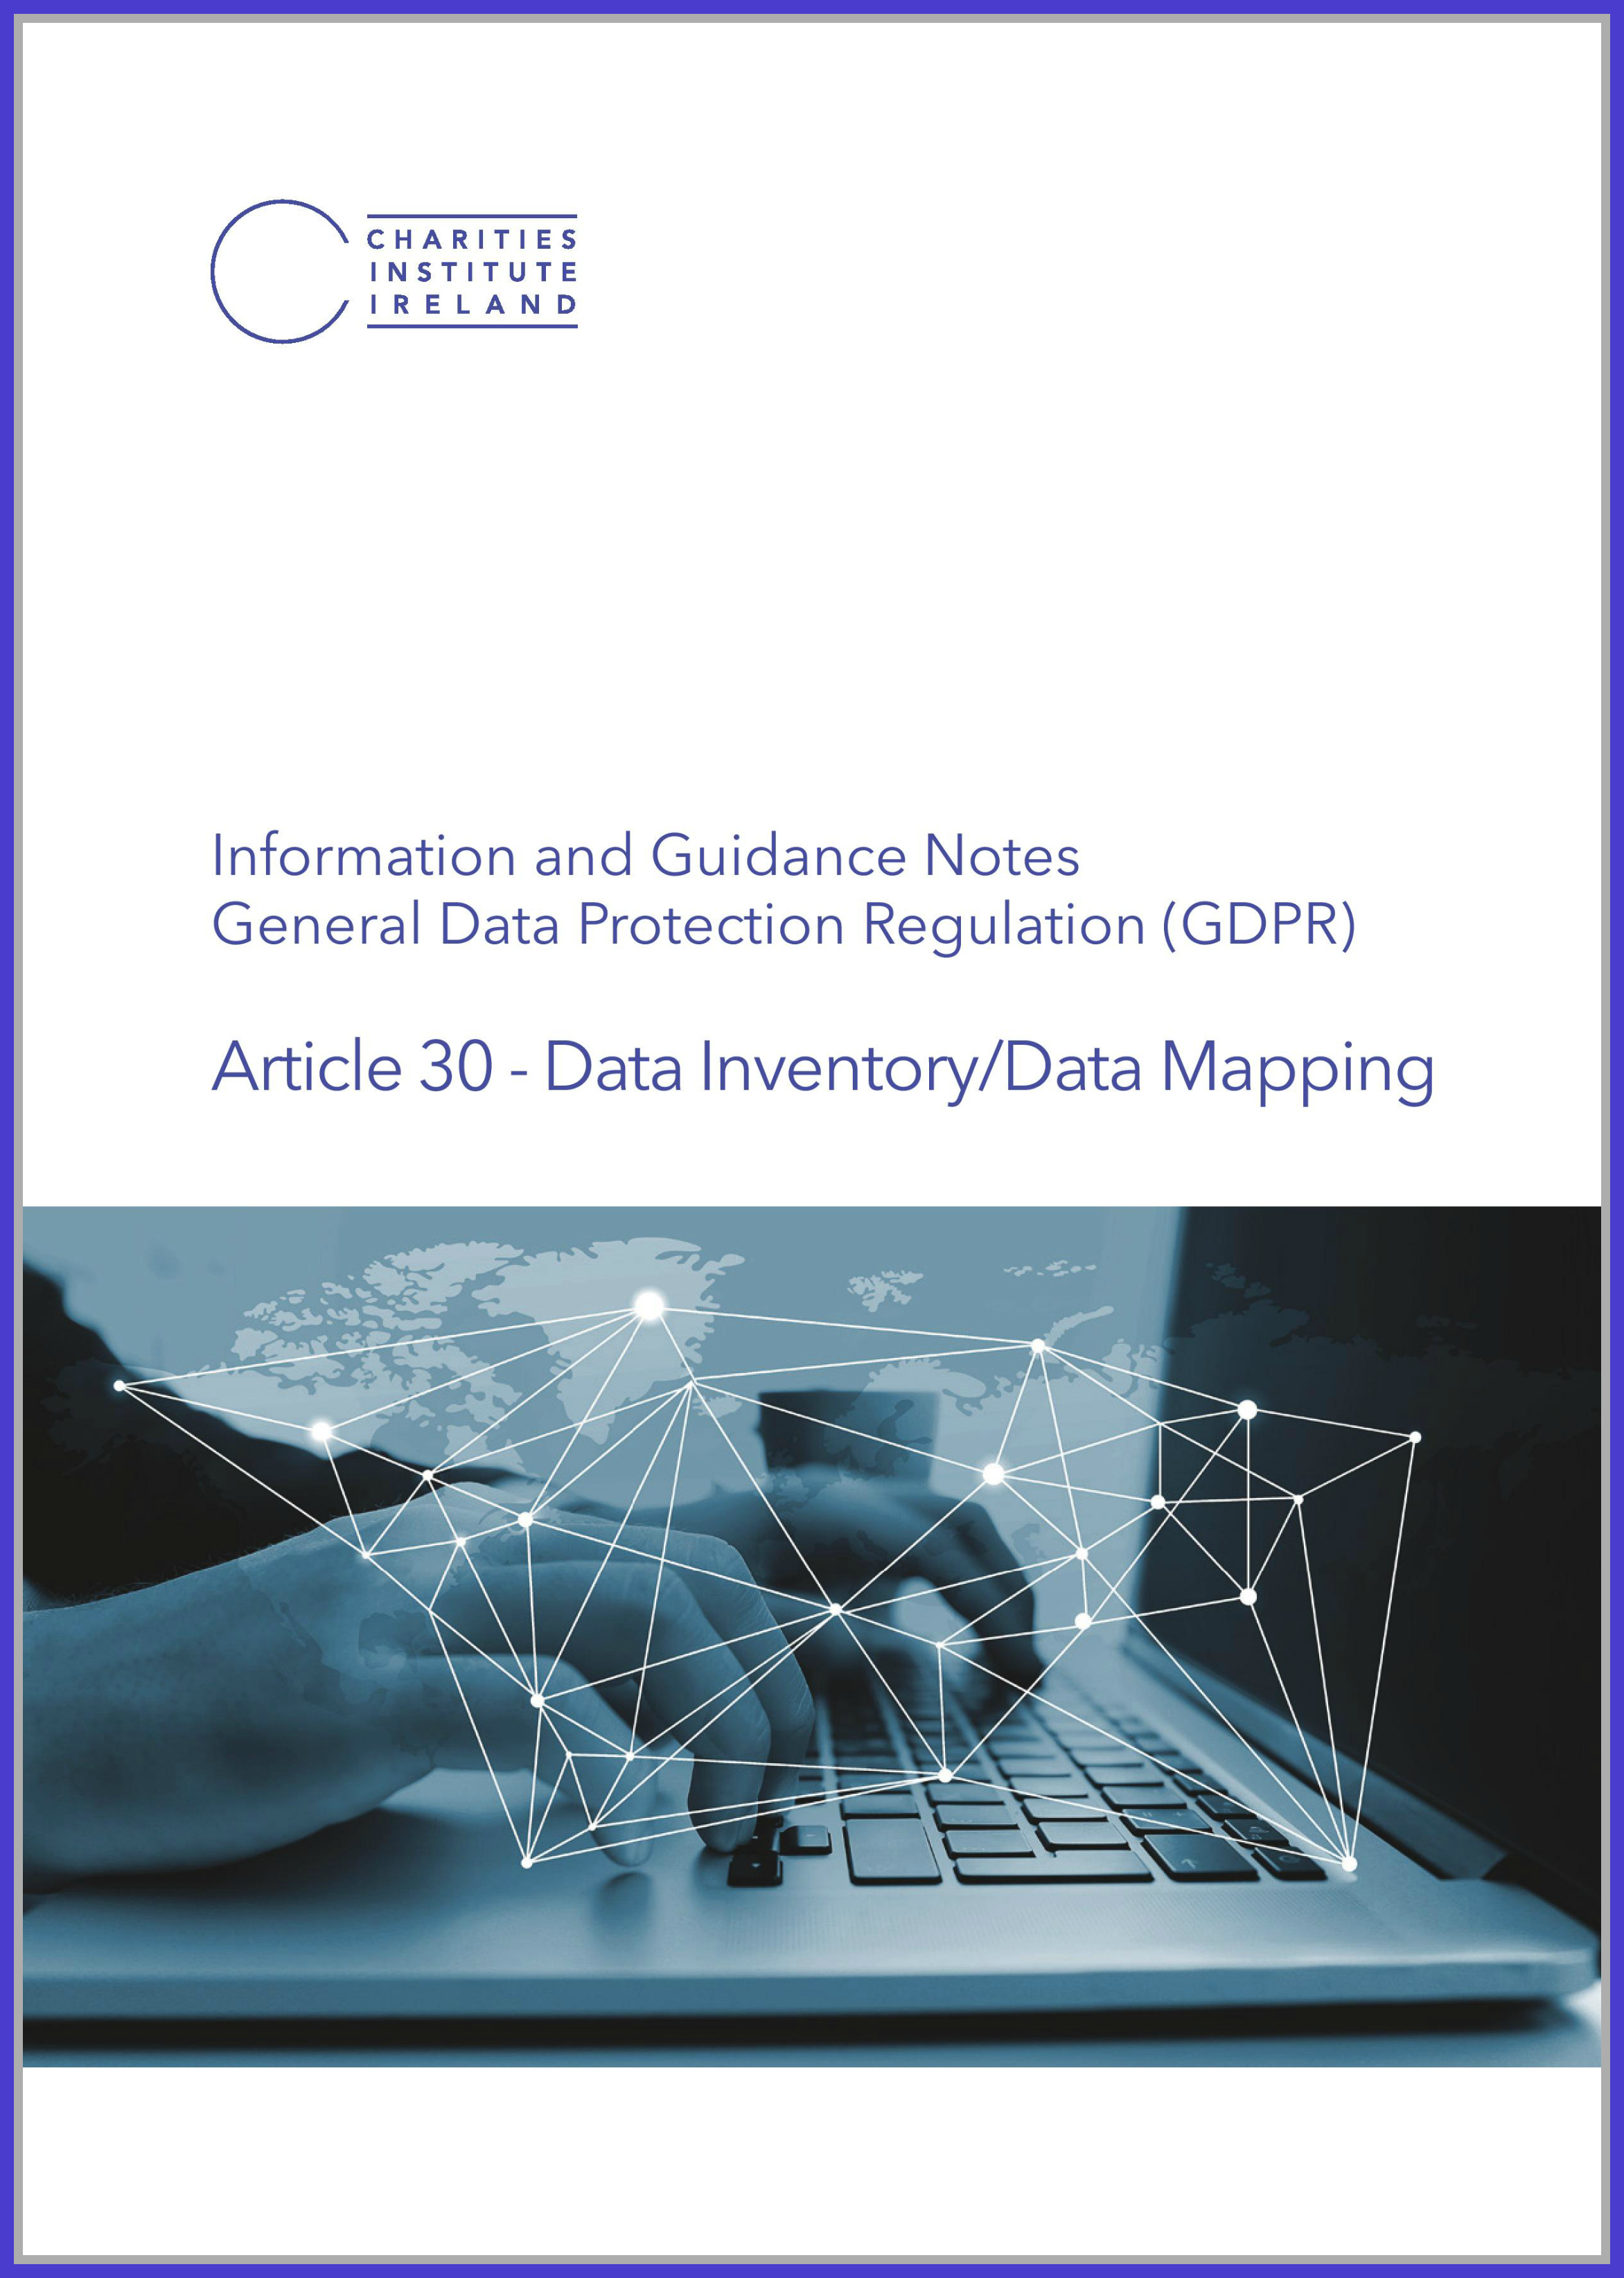 - The second document in this series includes information on Article 30 - Data Inventory & Data Mapping.